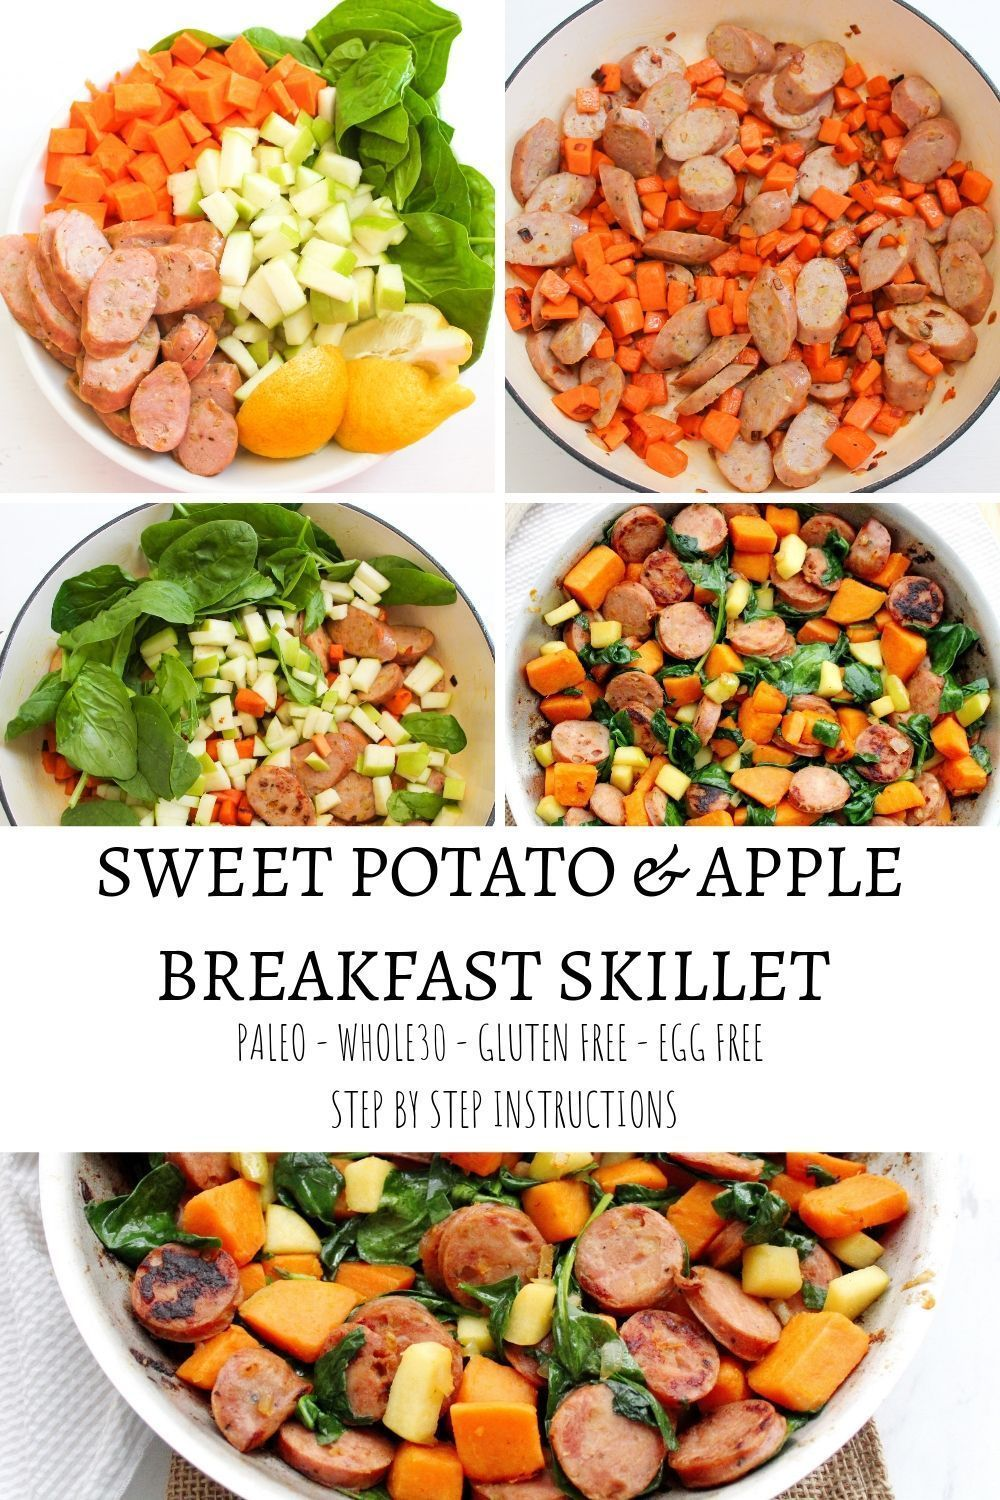 Sweet Potato and Apple Breakfast Skillet- Egg Free images